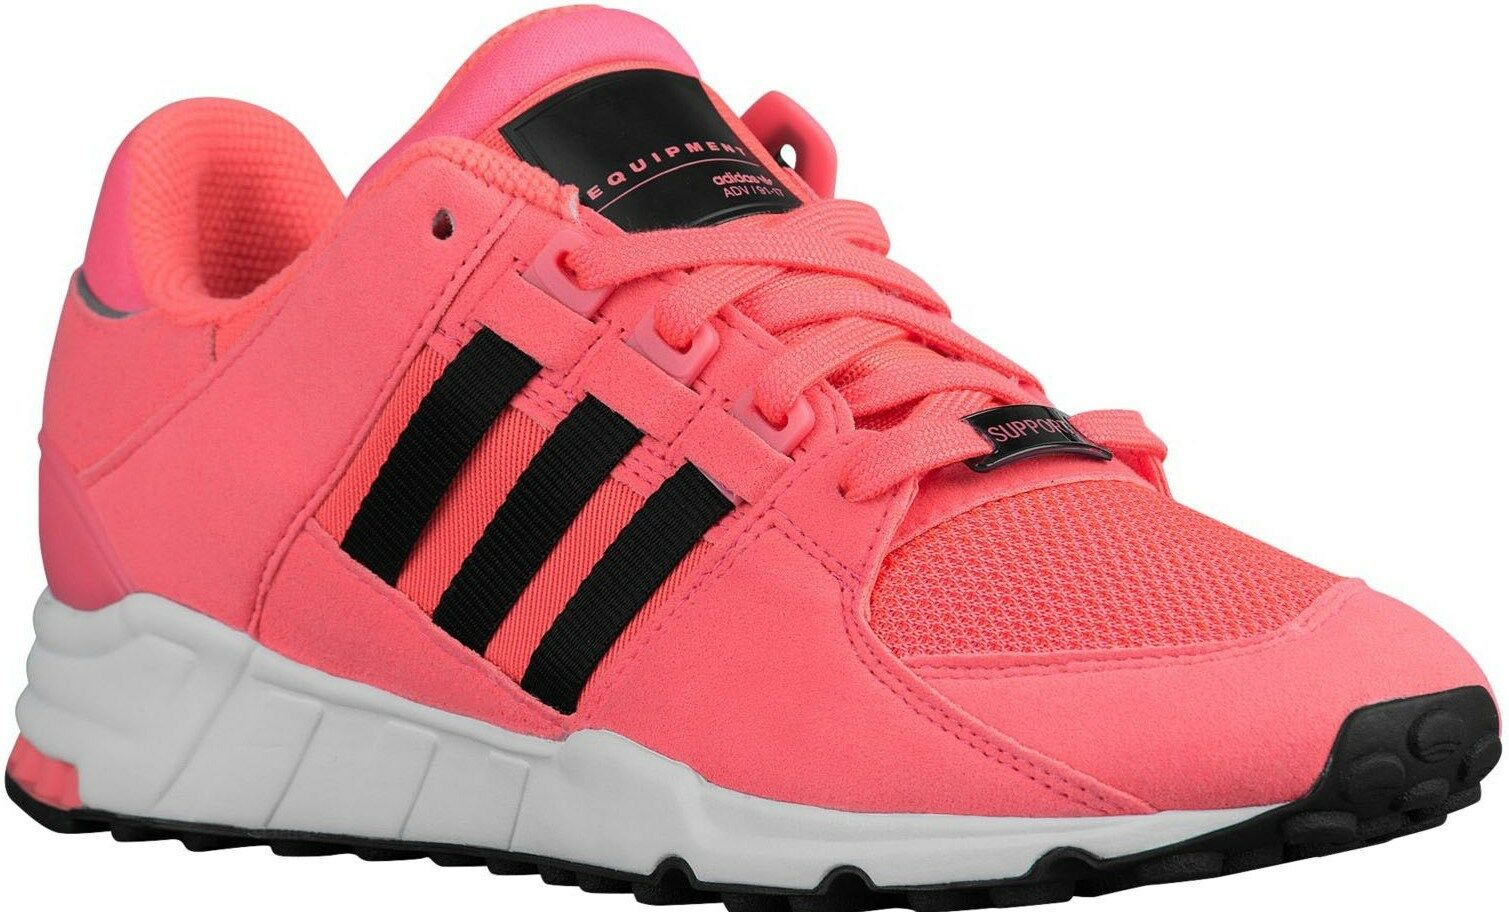 Zapatos promocionales para hombres y mujeres Adidas Equipment Running Support RF Sneaker Sport Laufschuhe Freizeit Schuhe EQT